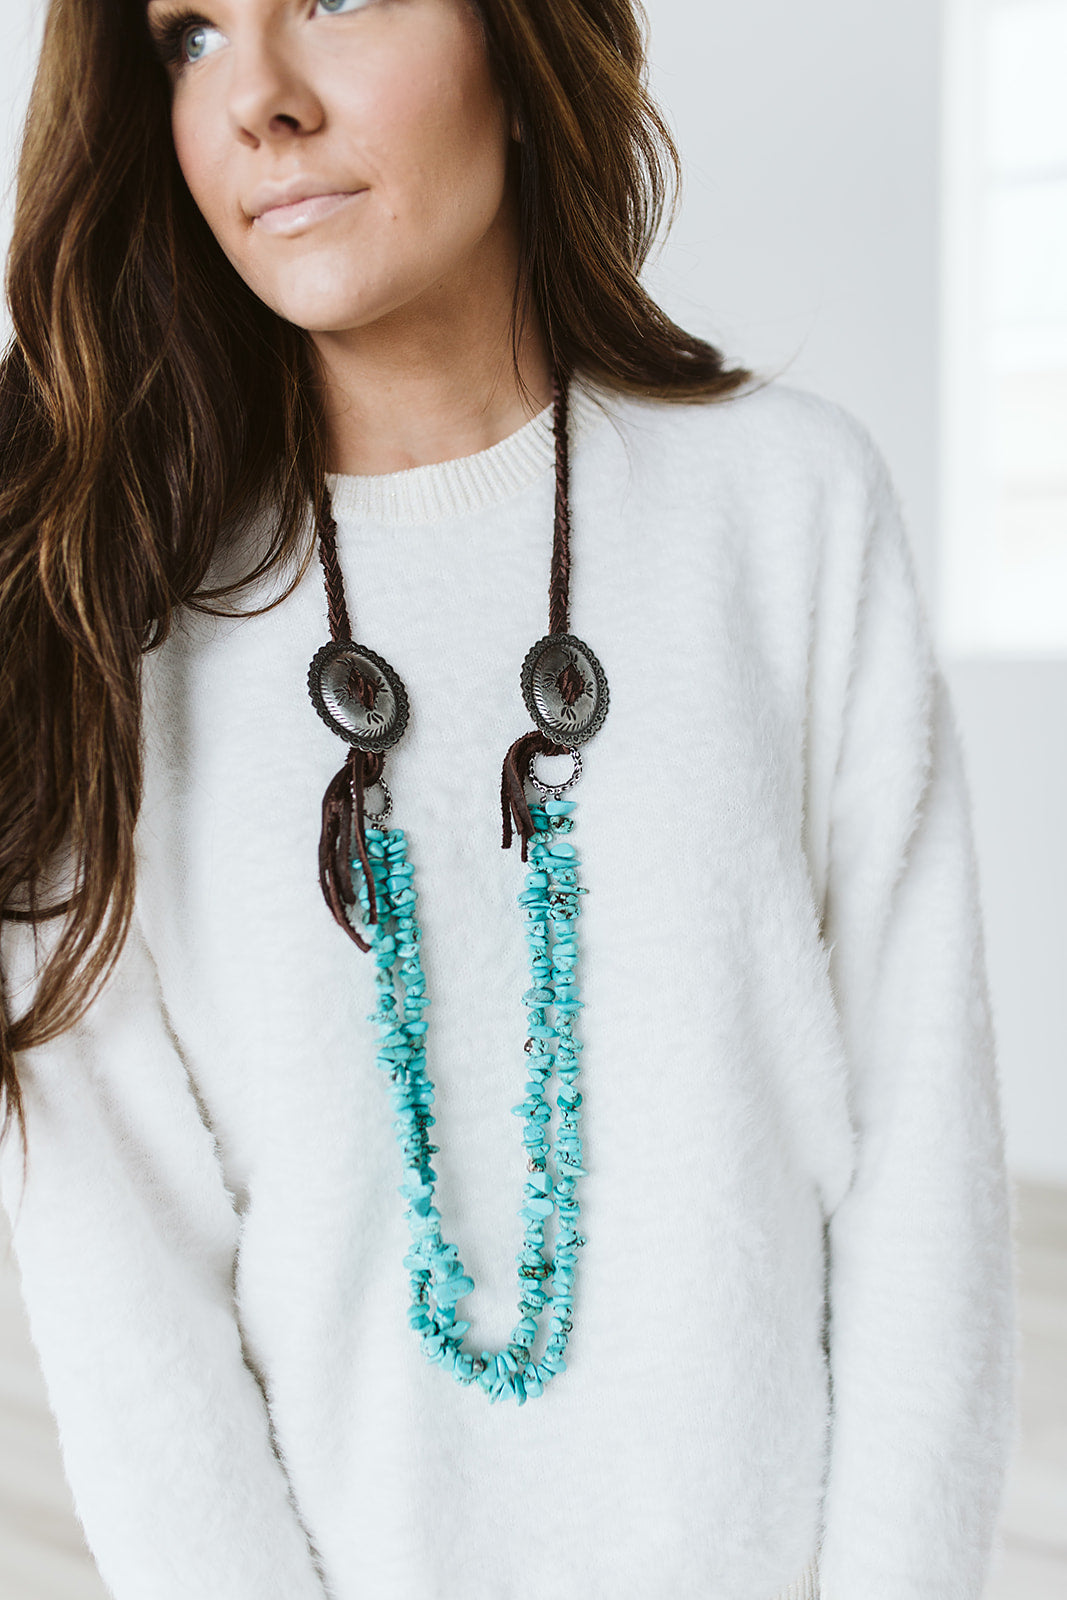 Turquoise and Concho Necklace